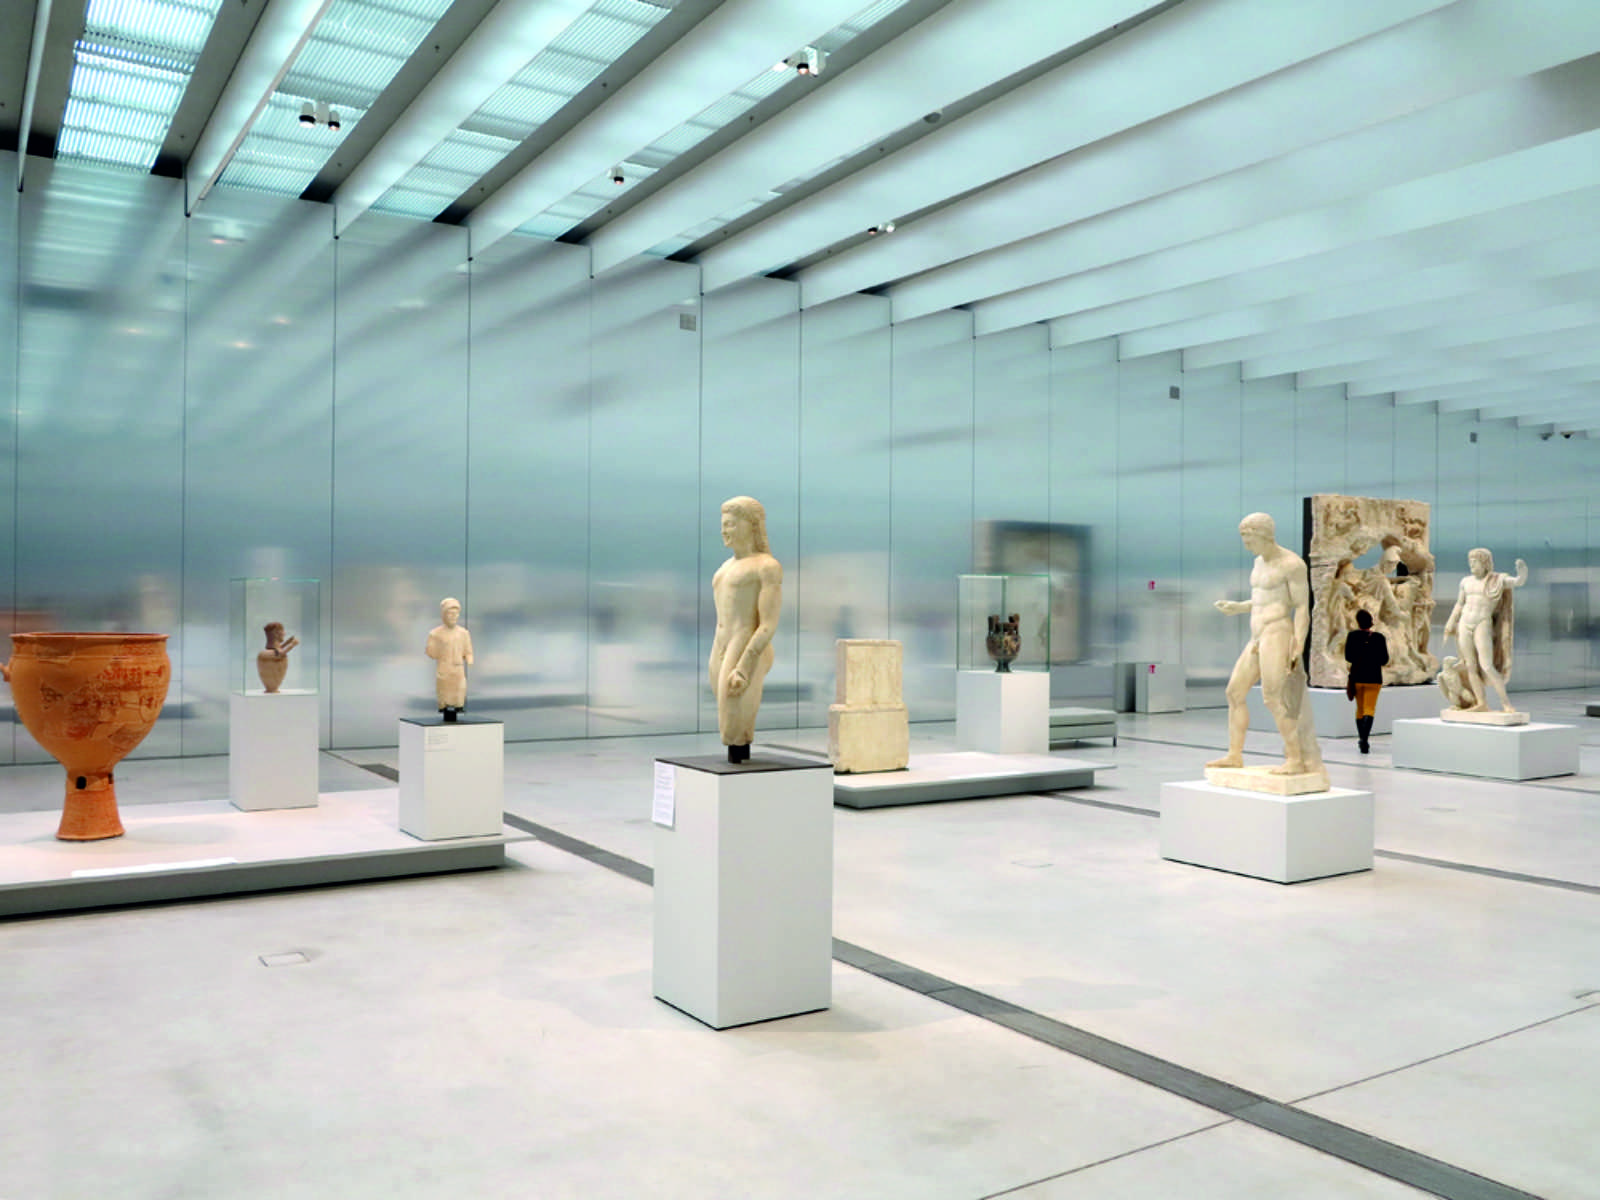 Louvre lens by sanaa and imrey culbert a as architecture - Louvre architekt ...